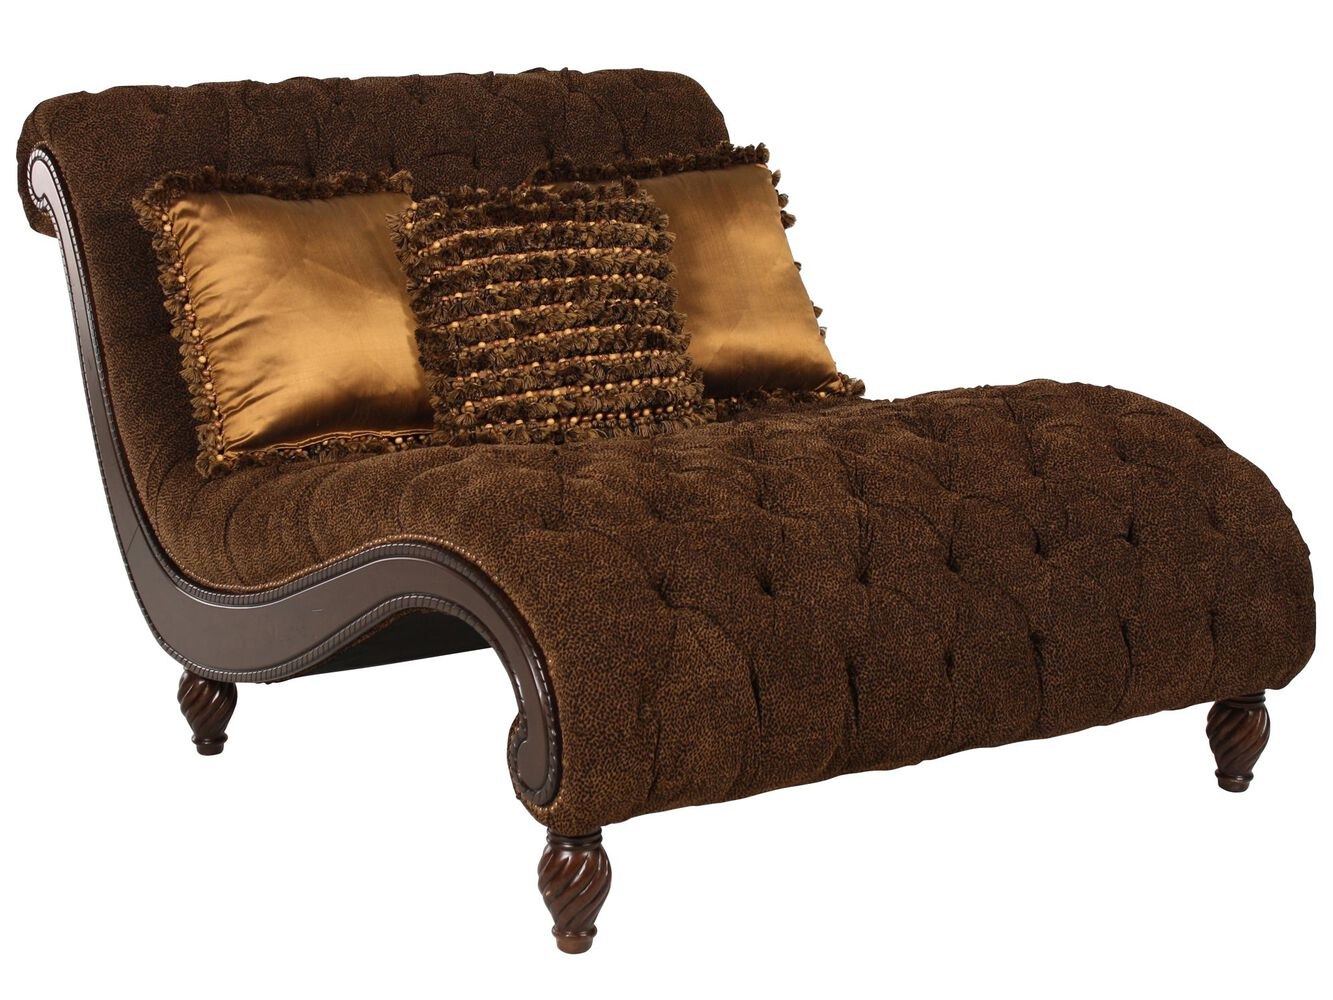 Animal print tufted traditional chaise in brown mathis for Animal print chaise